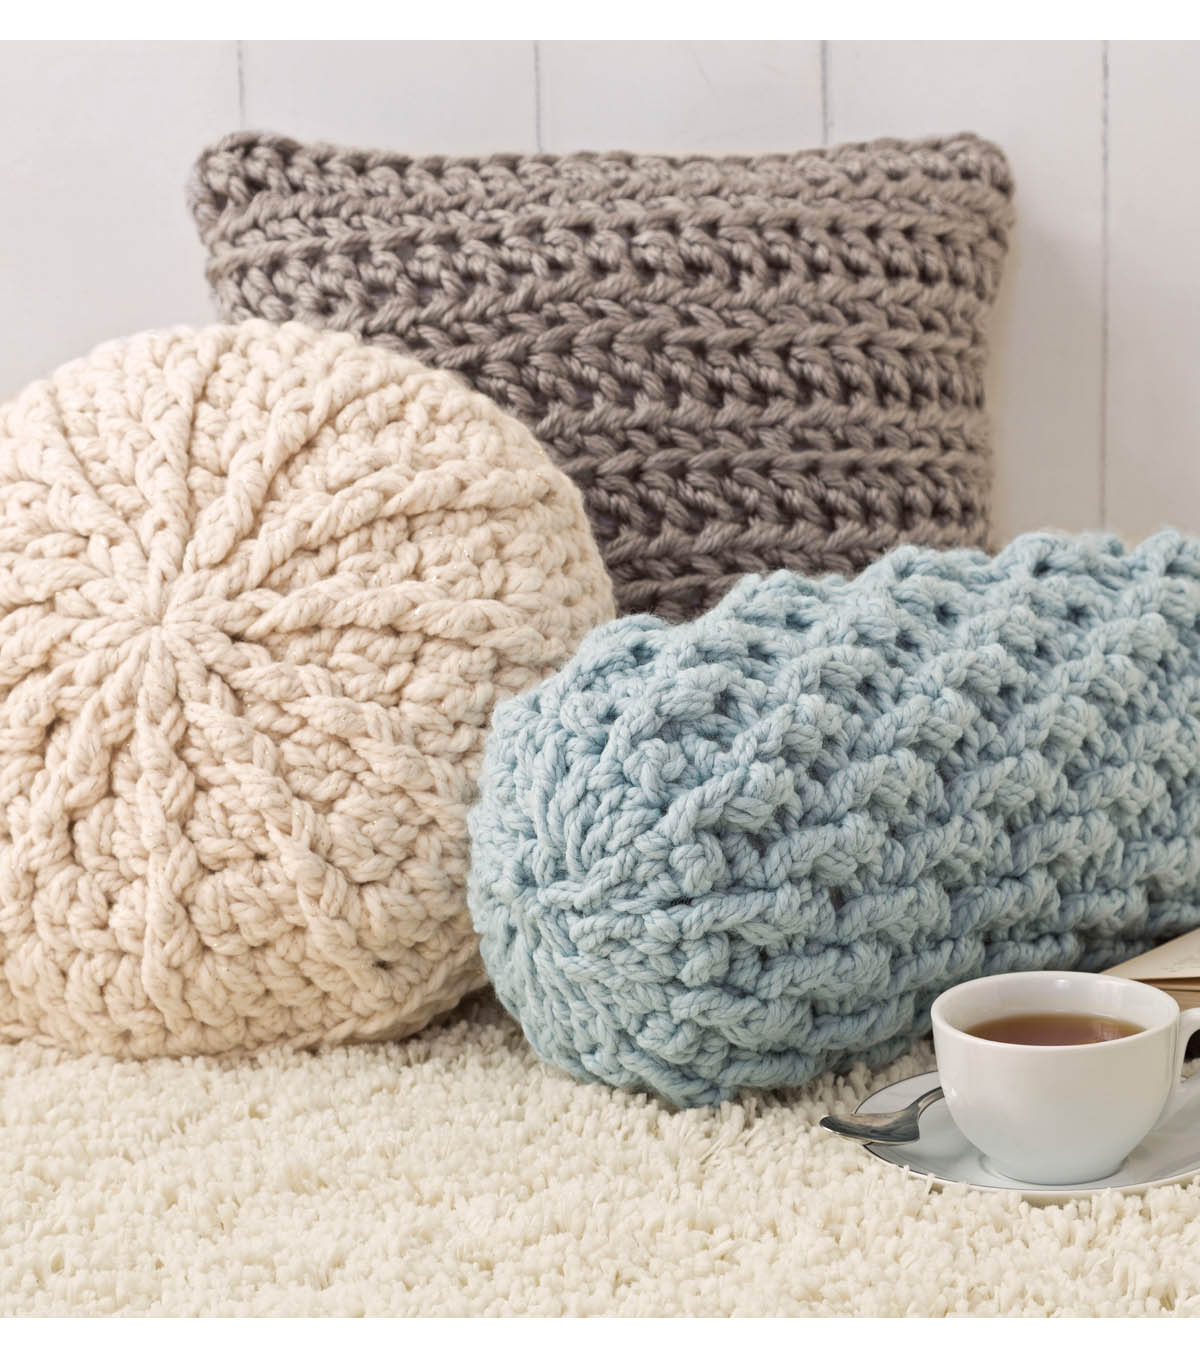 Cozy crochet pillows joann cozy crochet pillows bankloansurffo Image collections